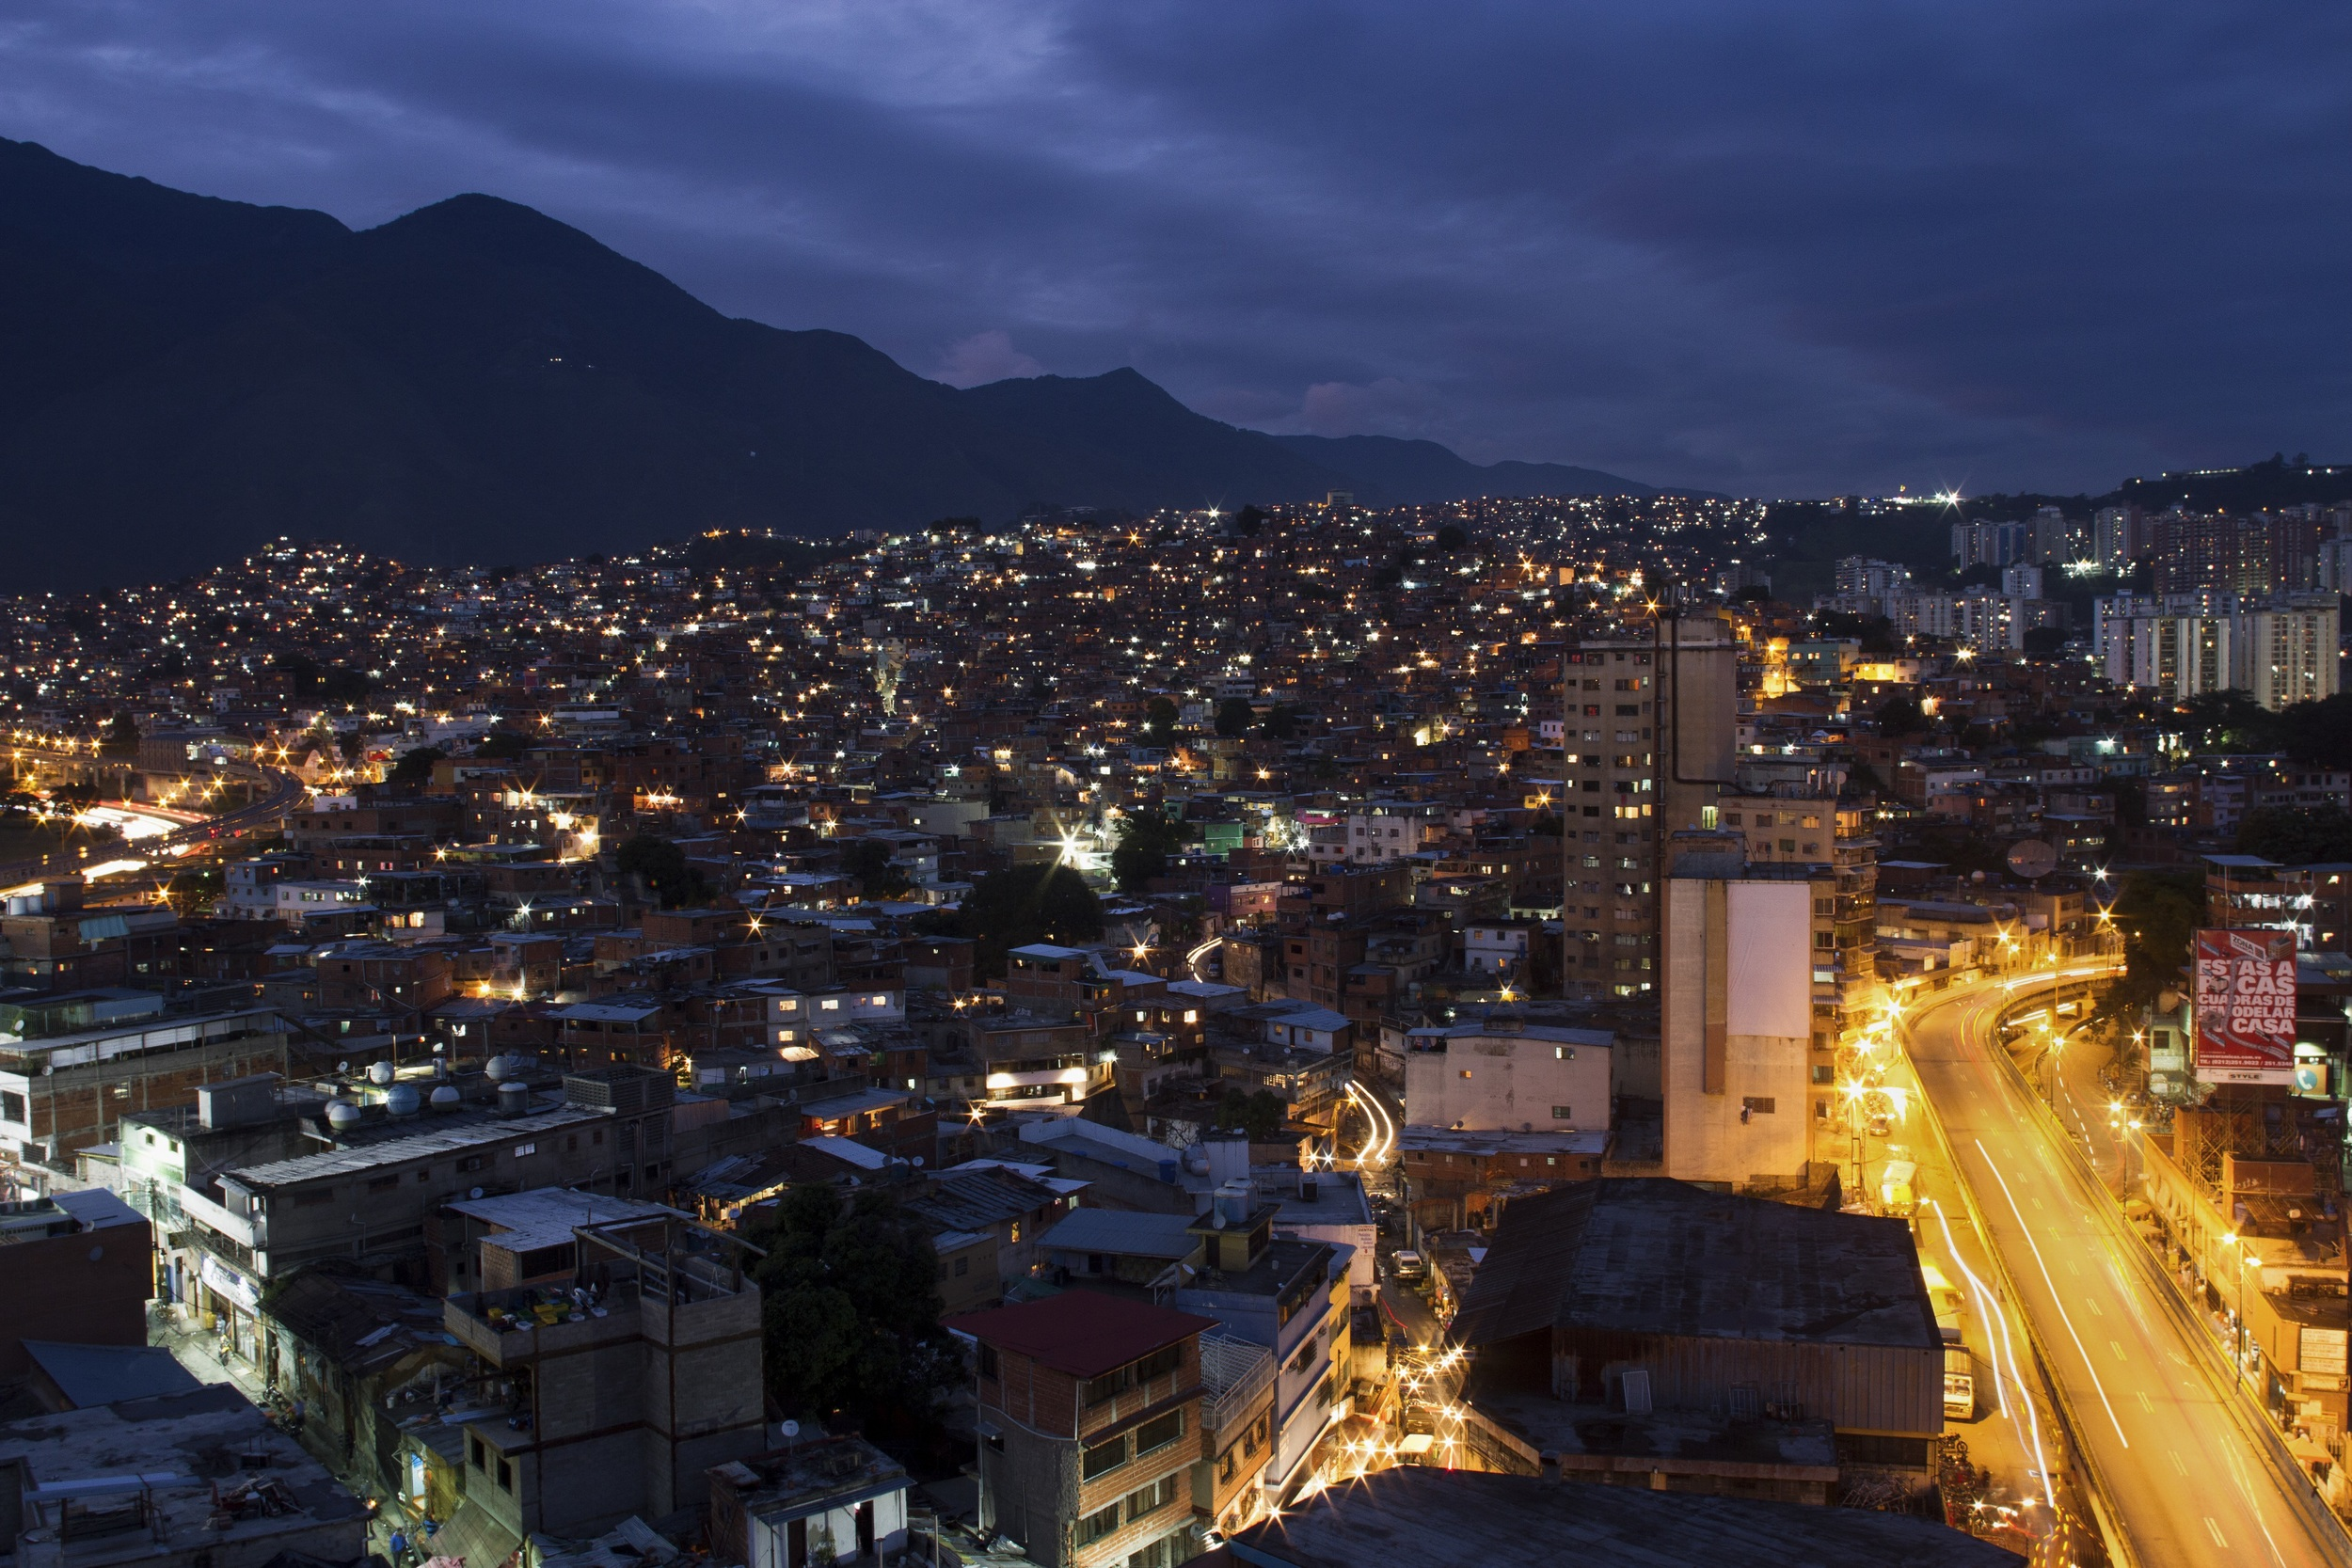 """Caracas, located on average at 1000 meters above sea level, has a variable topography. Its territorial extension occupies neighbourhoods in 30% to 50%. The metropolitan area has a population of approximately 5,380,668 inhabitants (2013). In Petare alone, there are more than 500,000 inhabitants."" (Source: Mayorship of Sucre).    ""  Caracas, ubicada en promedio a 1000 metros sobre el nivel del mar,  tiene una topograf'a variante. Su extensi—n territorial en barrios ocupa de 30% a 50%.  El área metropolitana  alberga una poblaci—n aproximada de 5.380.668 habitantes (2013). Solo en Petare viven más de 500.000 habitantes.  ""   (Fuente: Alcald'a de Sucre)."